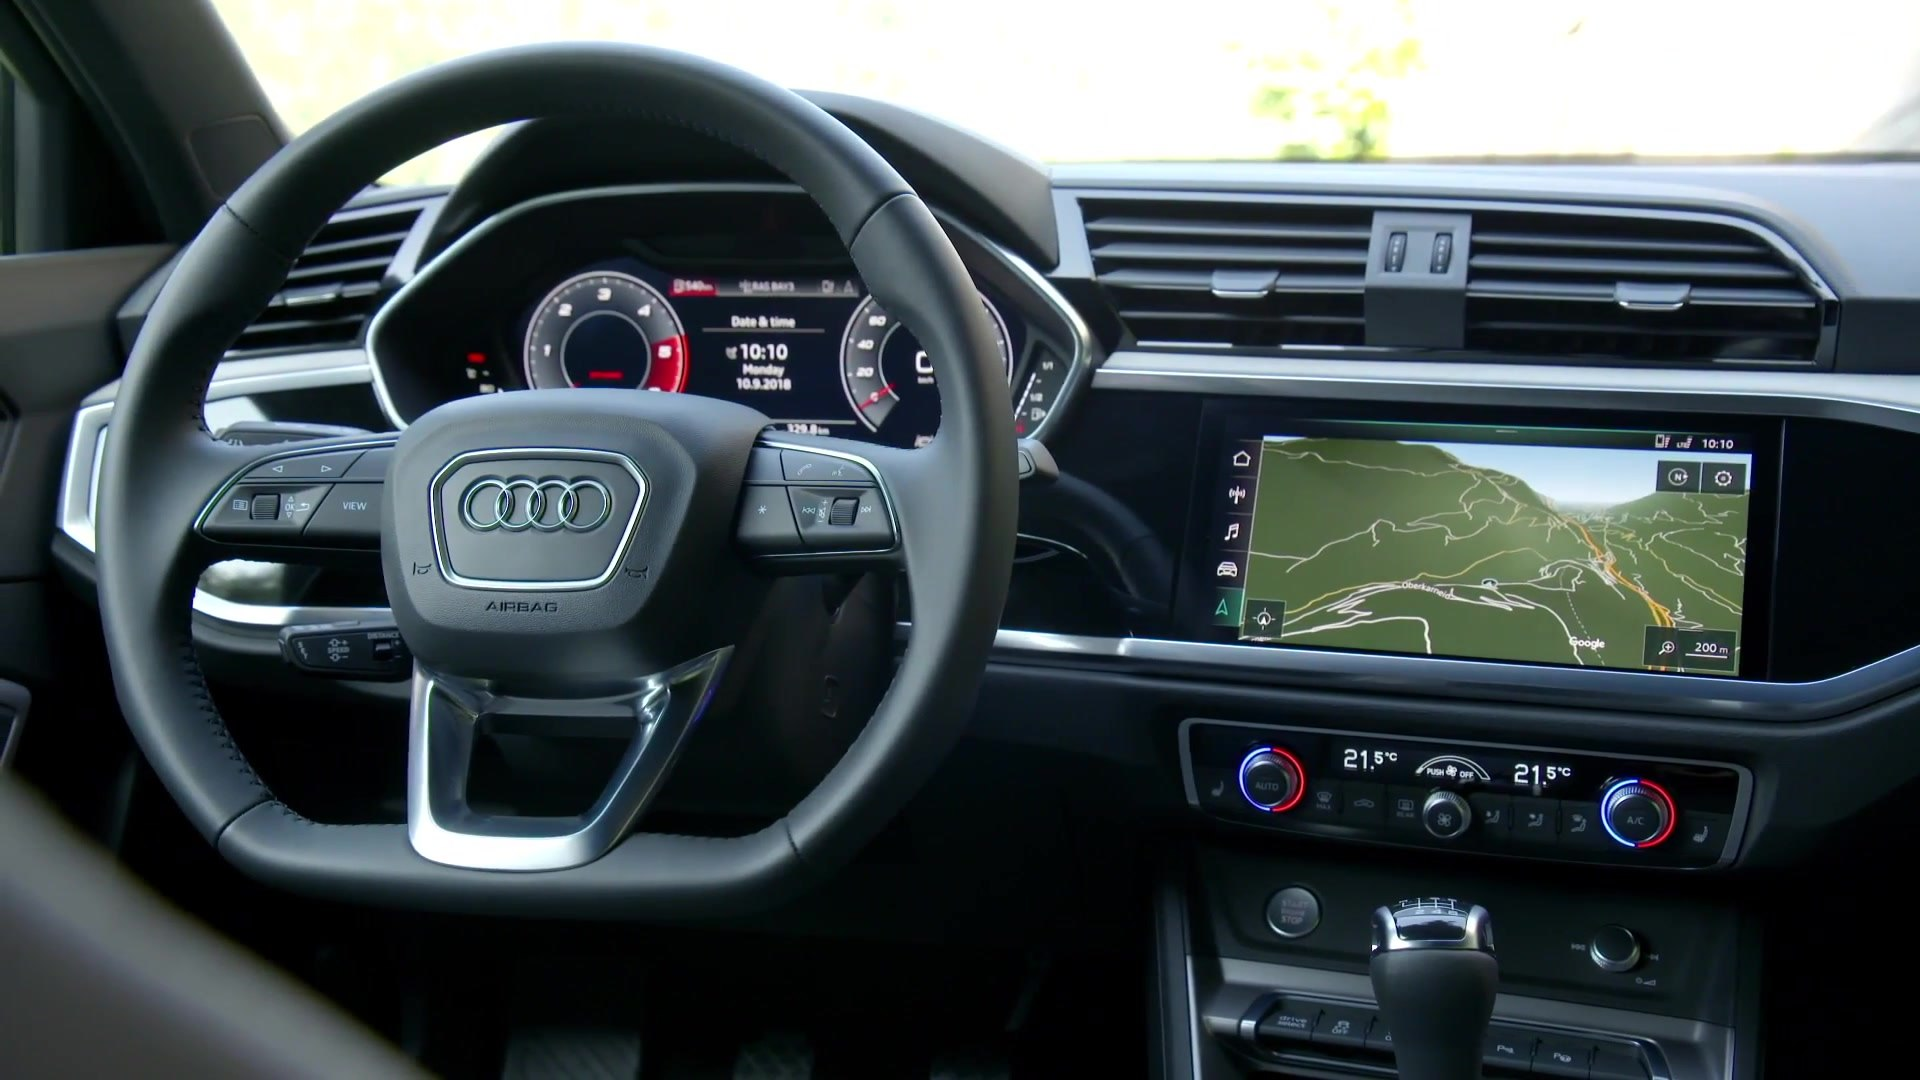 2018 Audi Q3 In Interior Design Chronos Grey Video Dailymotion